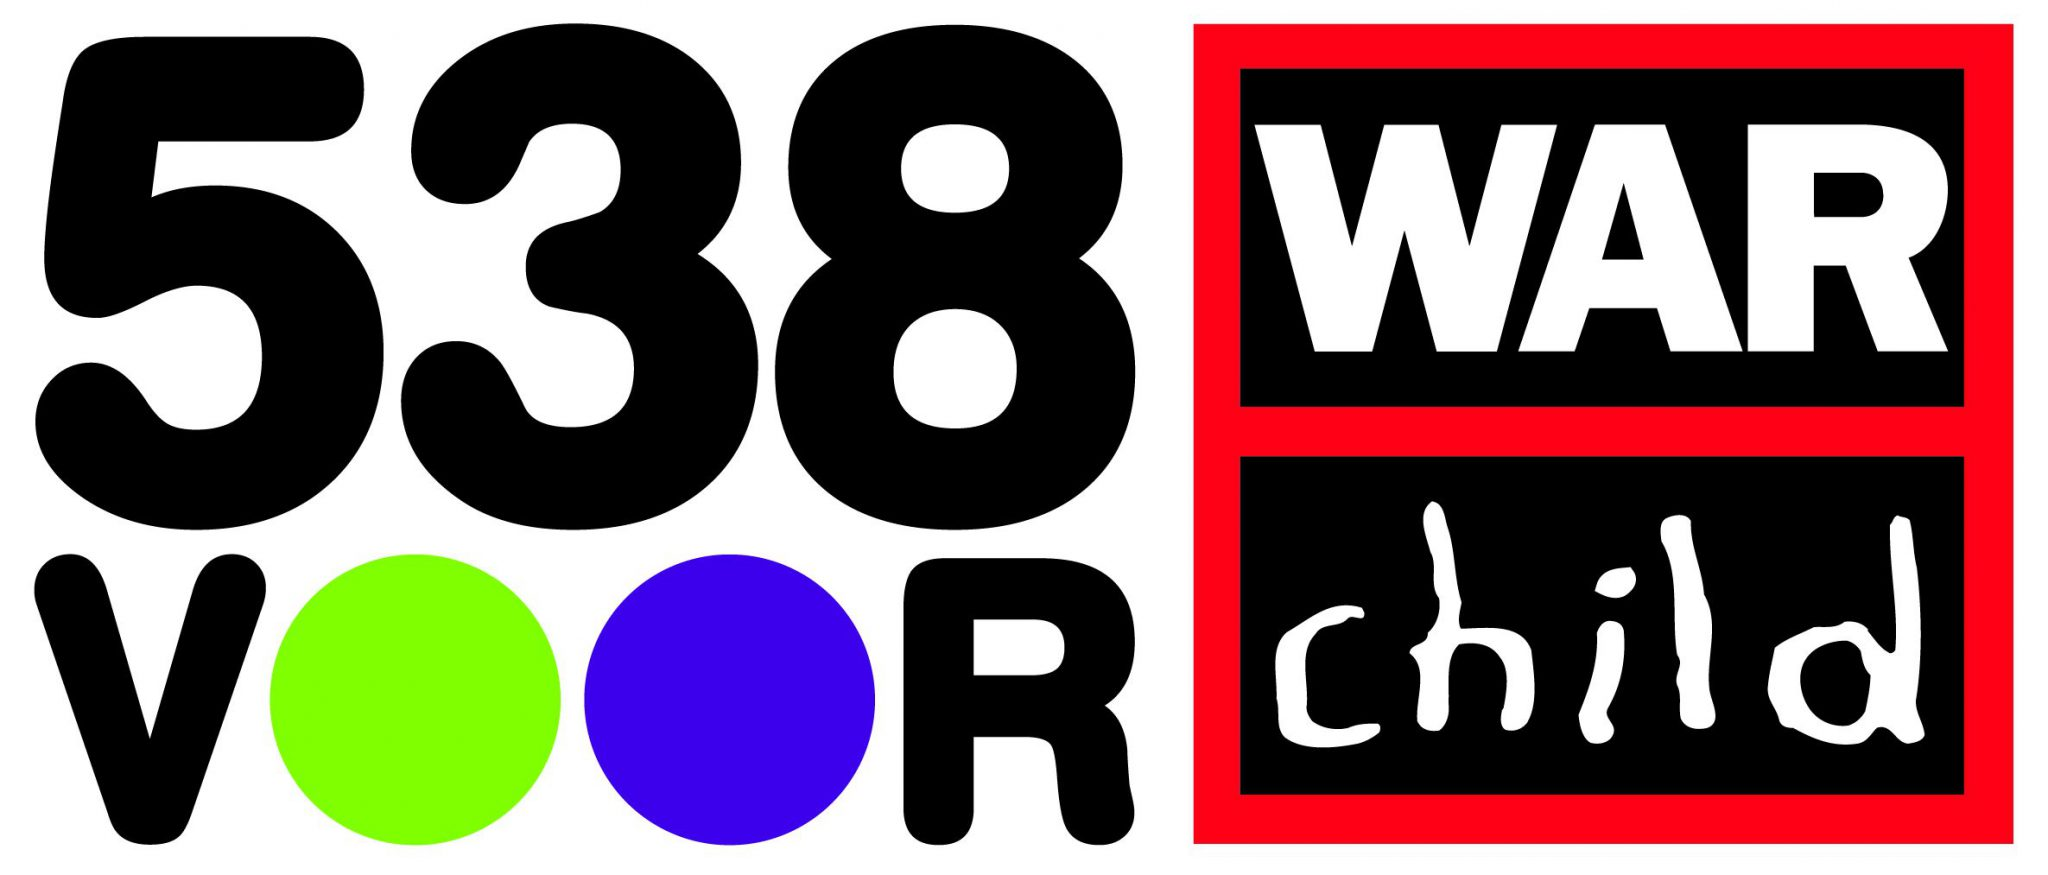 logo 538warchild